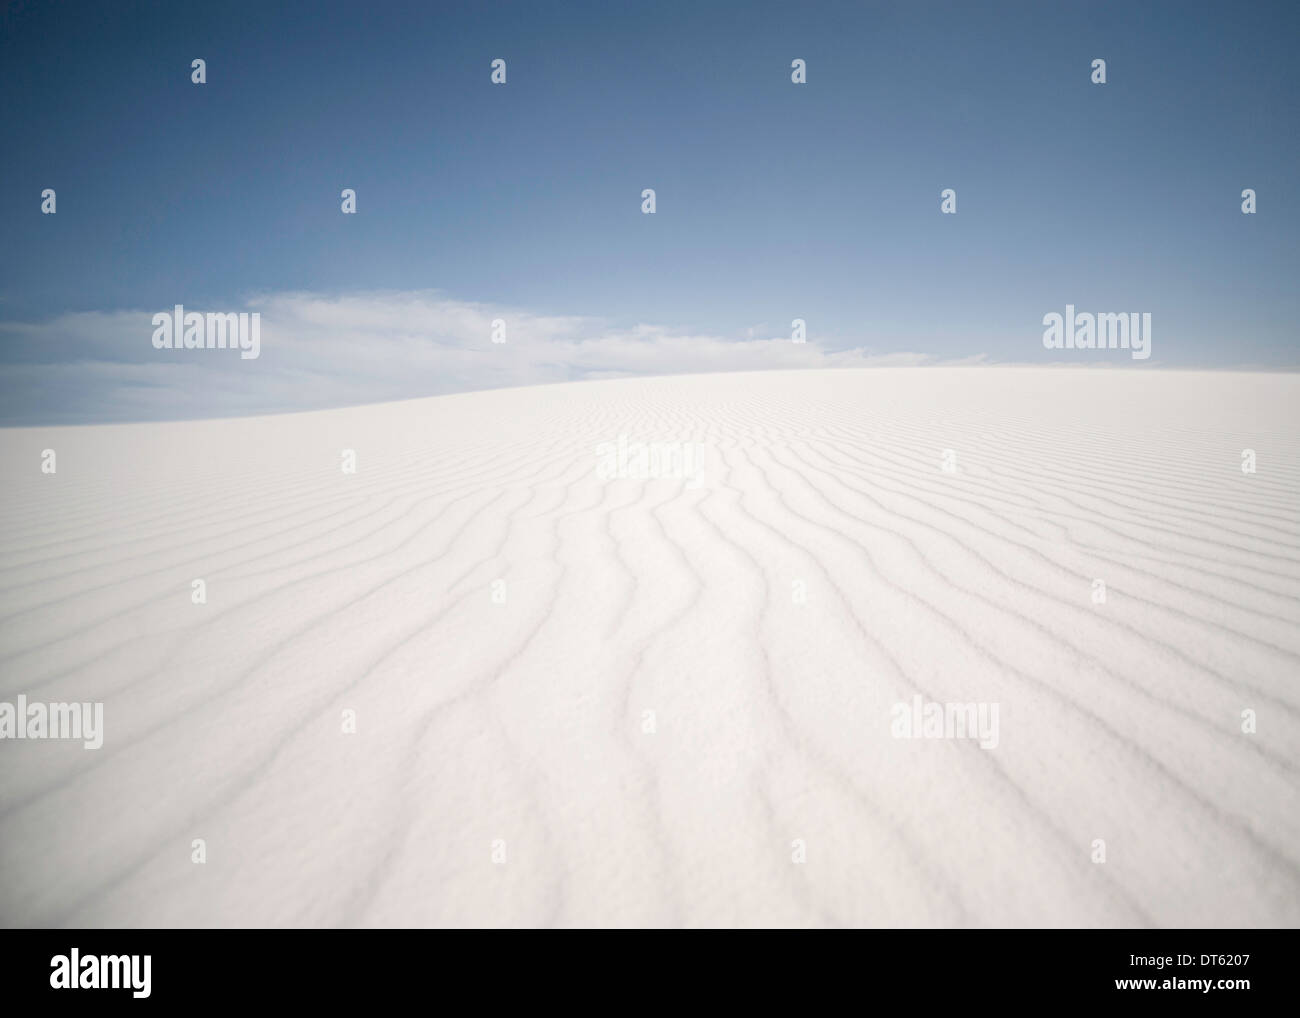 Rippling sand dune, White sands, New Mexico, USA - Stock Image